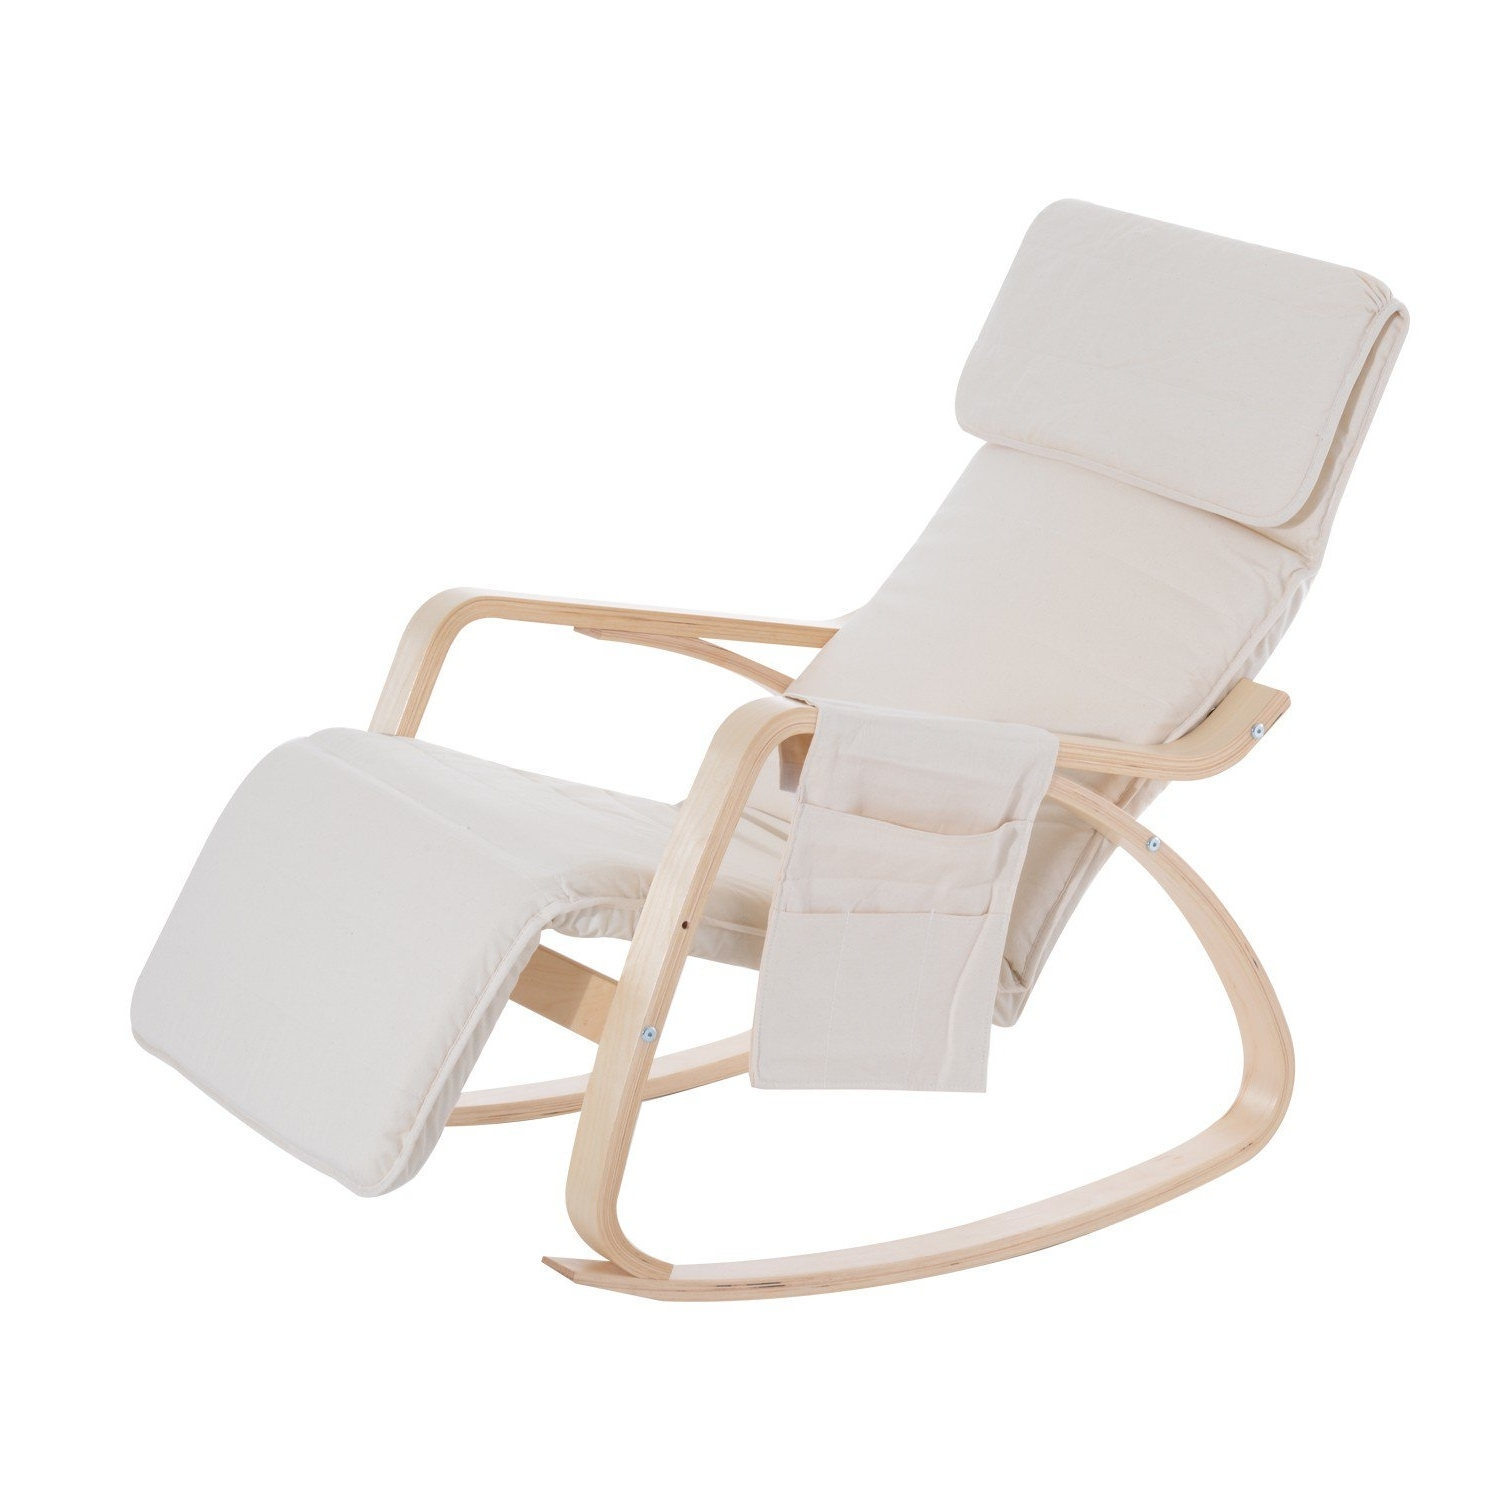 Most Popular Rocking Chairs With Footrest Pertaining To Homcom Rocking Chair W/adjustable Footrest & Side Pocket Beige (View 5 of 20)